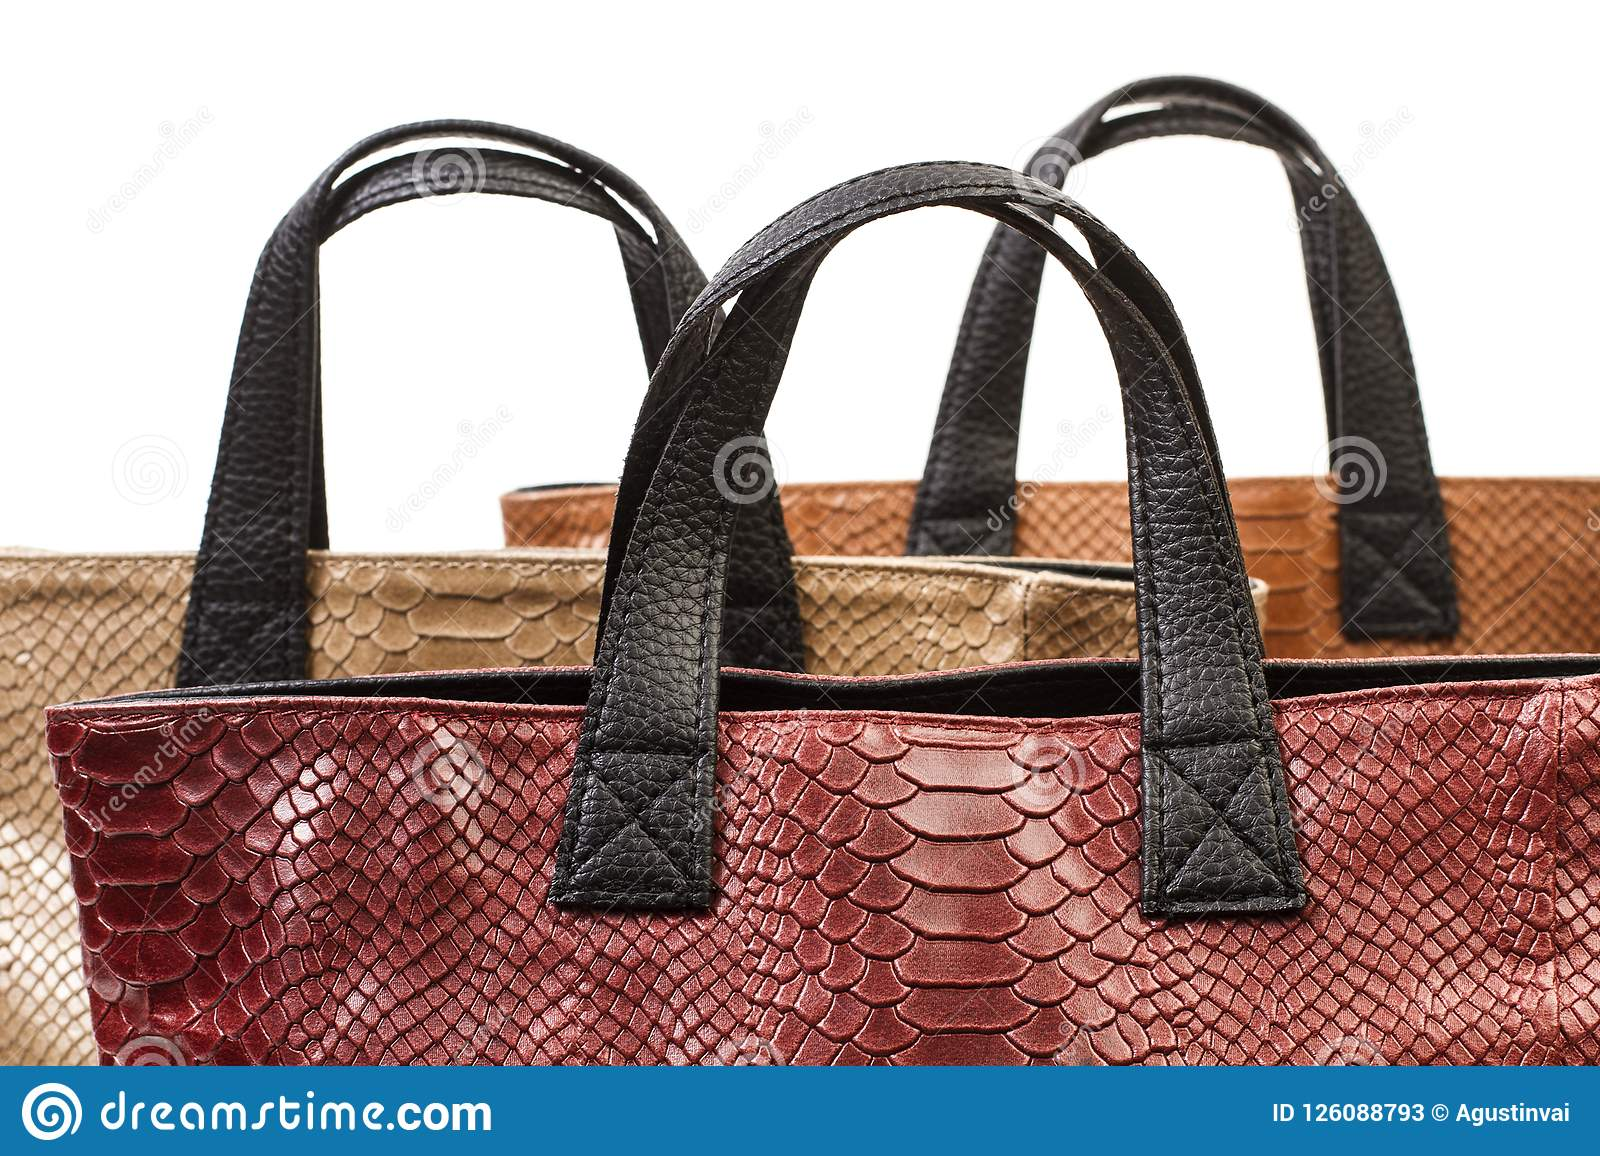 f58f50d0e7 Two Female Leather Handbags Stock Image - Image of lady